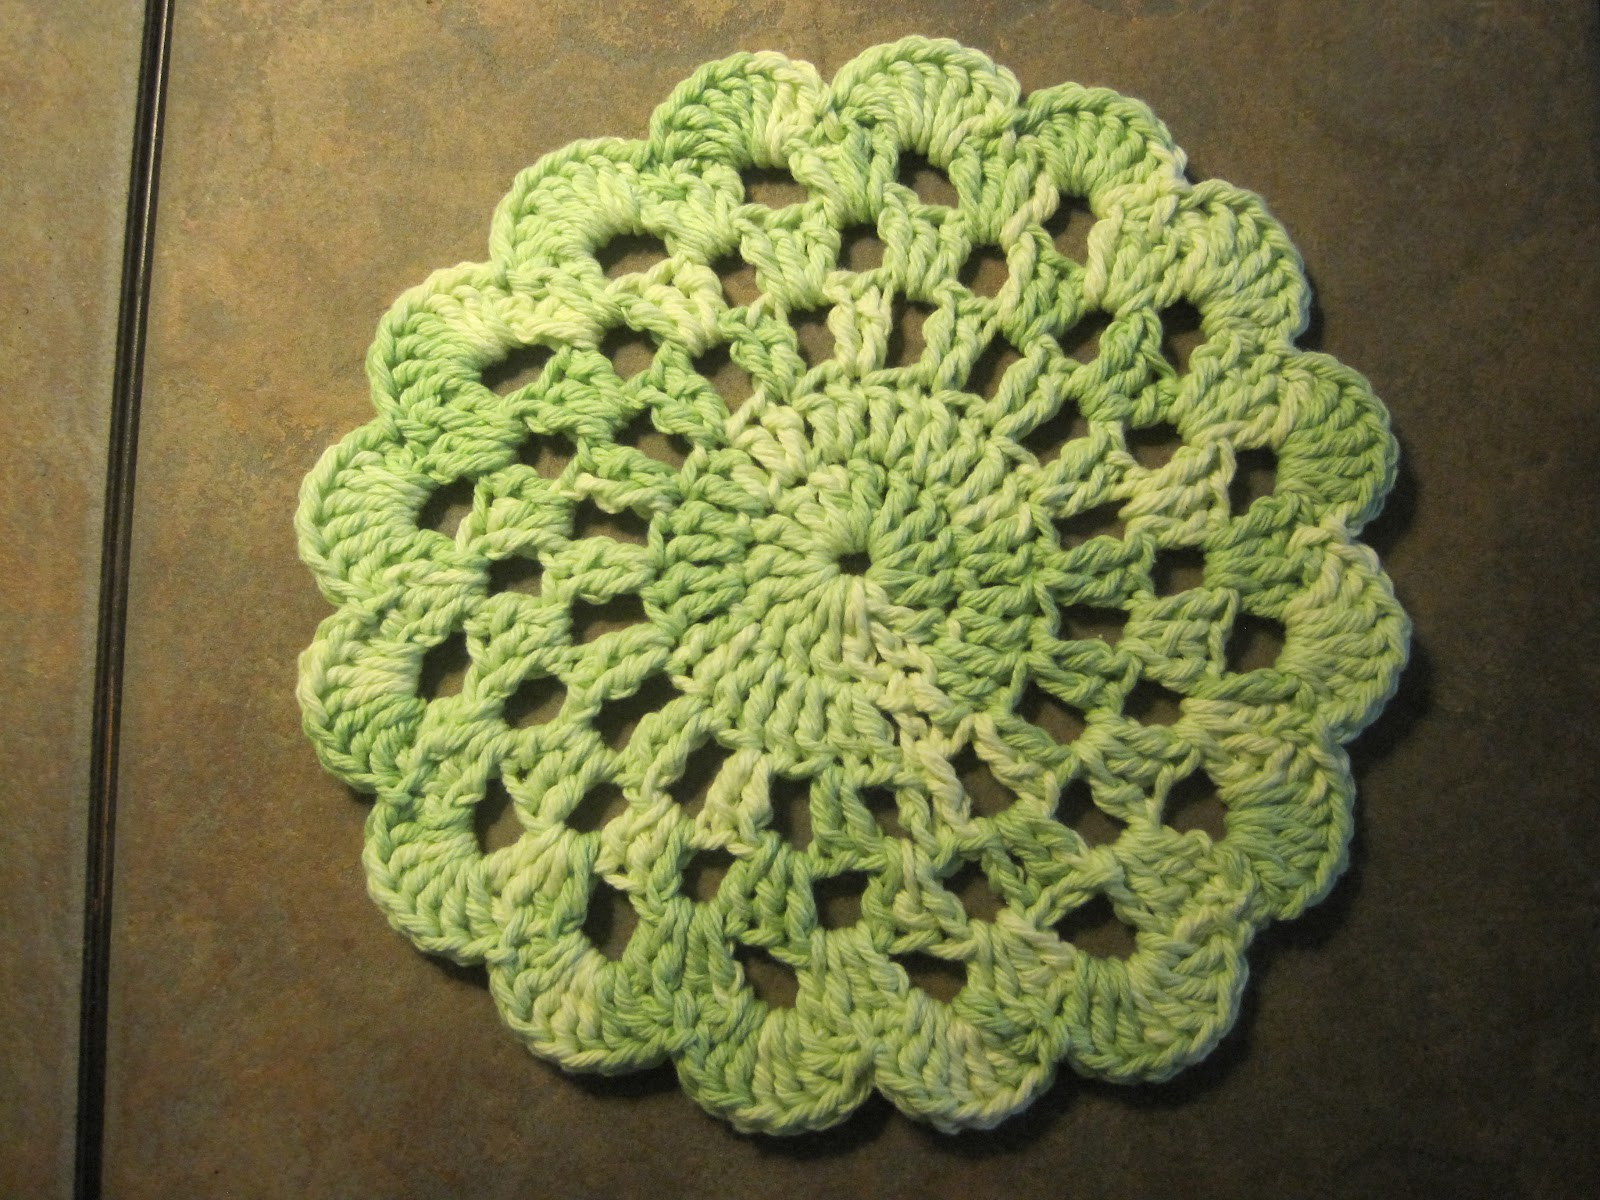 Free Crochet Patterns Using Sugar And Cream Yarn : Stitches, Scraps and Sparkles in the Sun: Dishcloth, Yarn ...